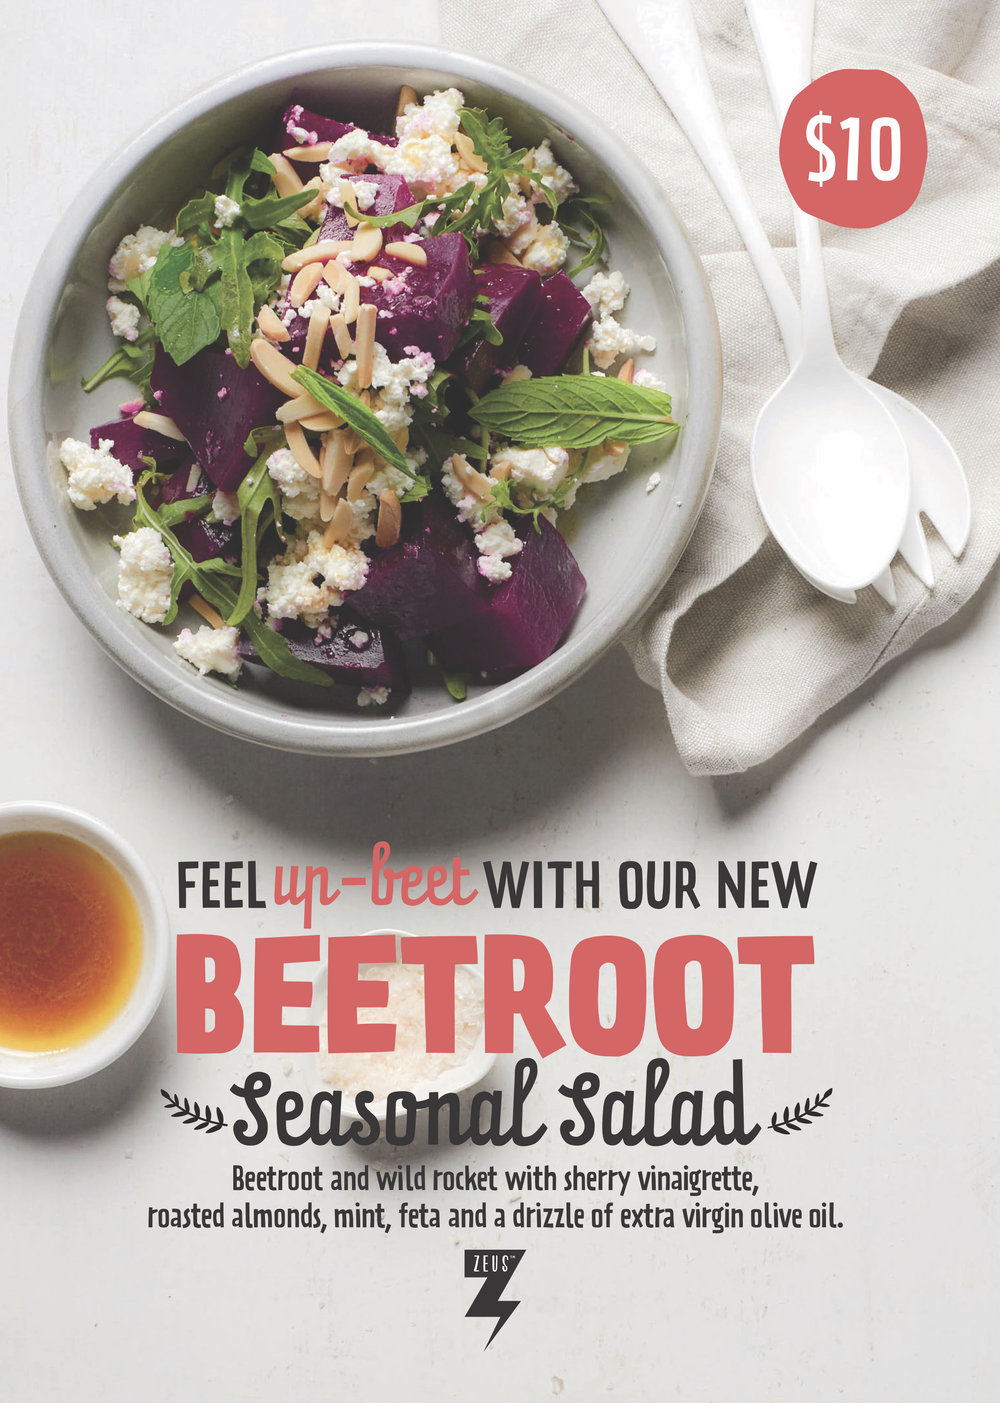 Beetroot Seasonal Salad Poster A4 Hight Stores copy.jpg